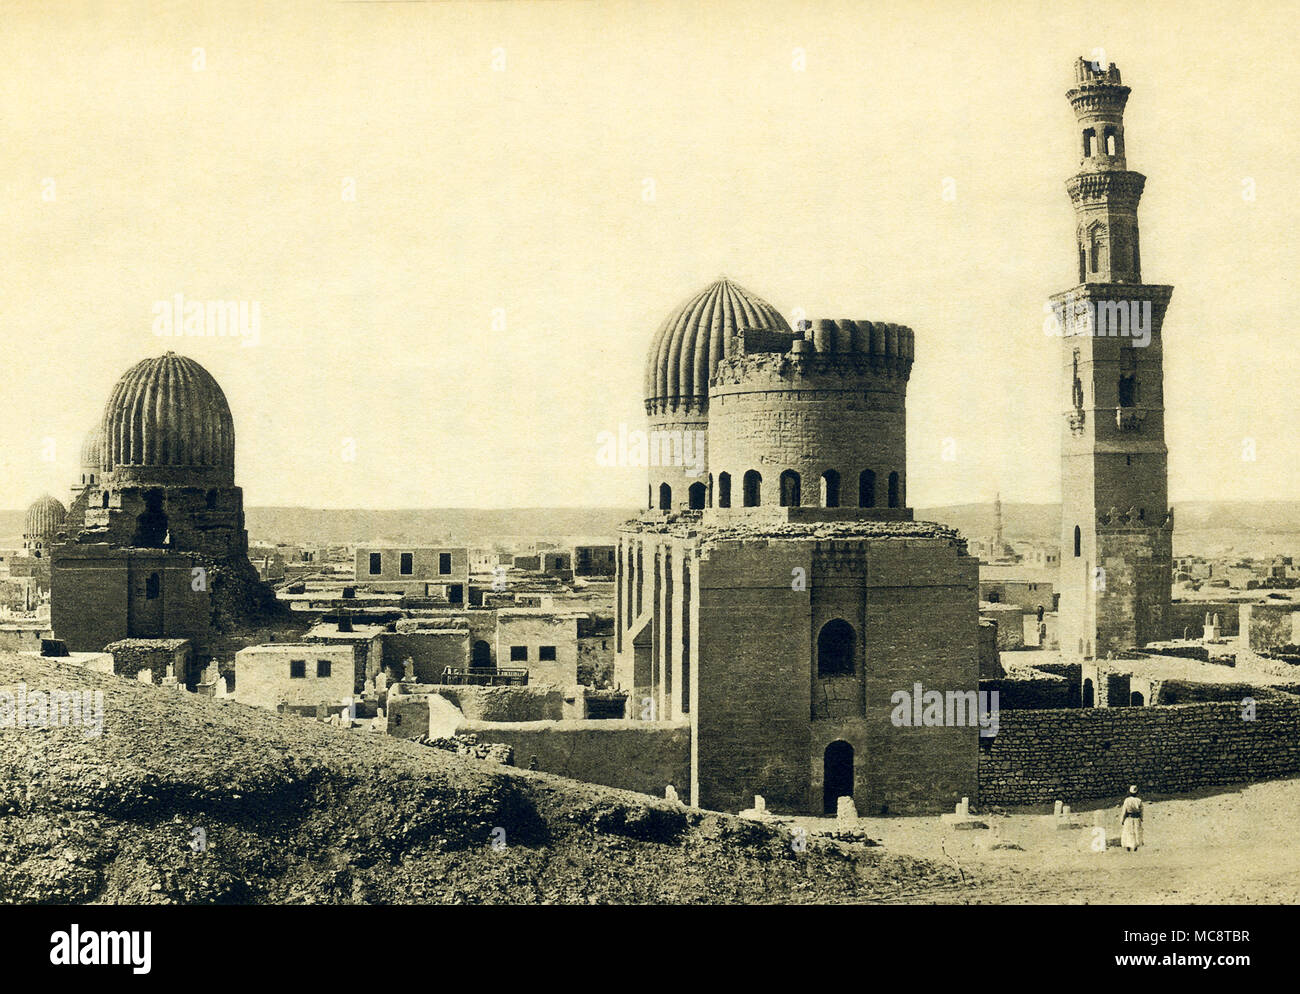 This photo dates to around 1900 and shows the Tombs of the Mamluks in Cairo. The Mamluks were slave soldiers and served the Muslim caliphs and the Ottoman Empire. As the decades passed they became a powerful caste, on accasion, seizing power for themselves. The Mamluk Sultanate of Egypt began in 1250 and ended in 1517 when the Ottomans took control of Egypt. Toward the end of the 14th century, the Mamluk rulers began looking for a new necropolis for themselves and established a cemetery in northern Cairo, the area known as Qarafa. The area is also known as the City of the Dead and the Cairo Ne - Stock Image